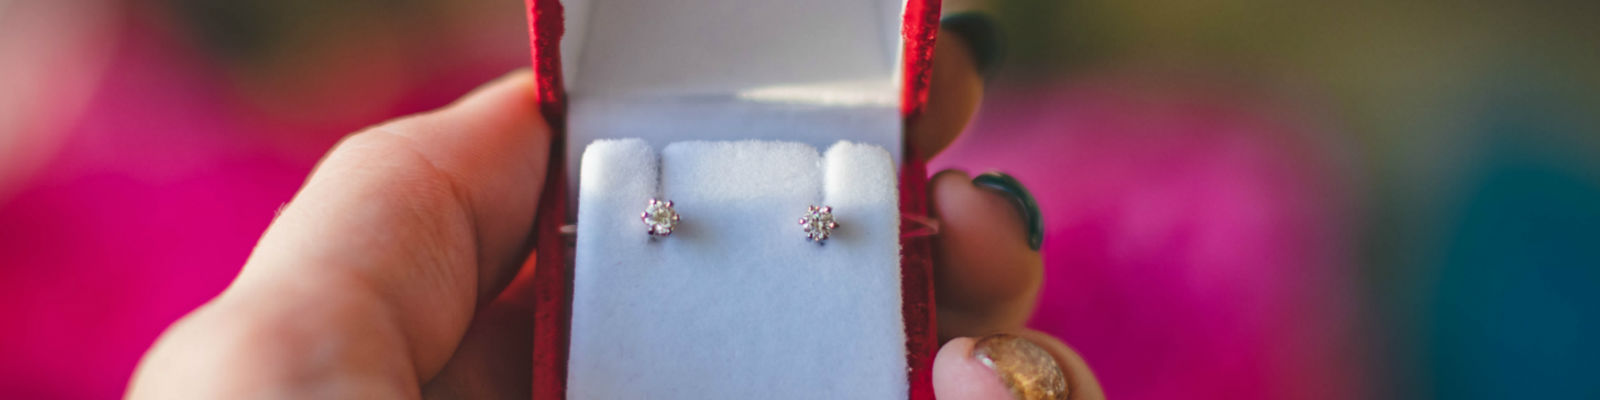 How Much Diamond Stud Earrings Cost